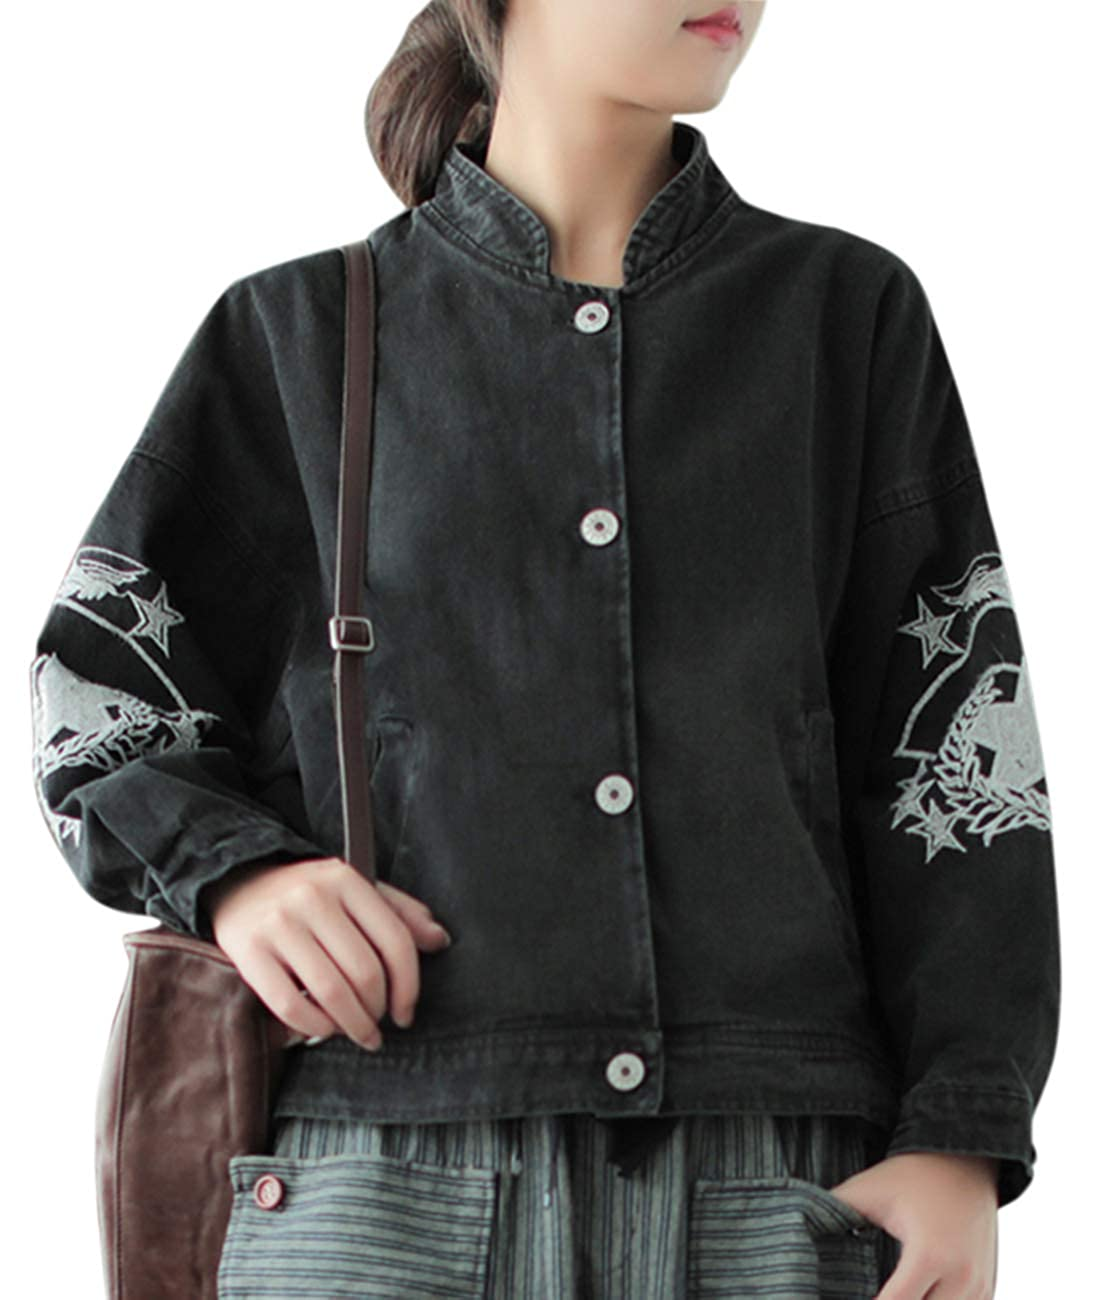 Eg1 Black YESNO WF9 Women Casual Long Button Down Denim Jacket Loose Fit Jean Trench Coat Outwear 4 5 Sleeve Ripped Large Flap Pockets